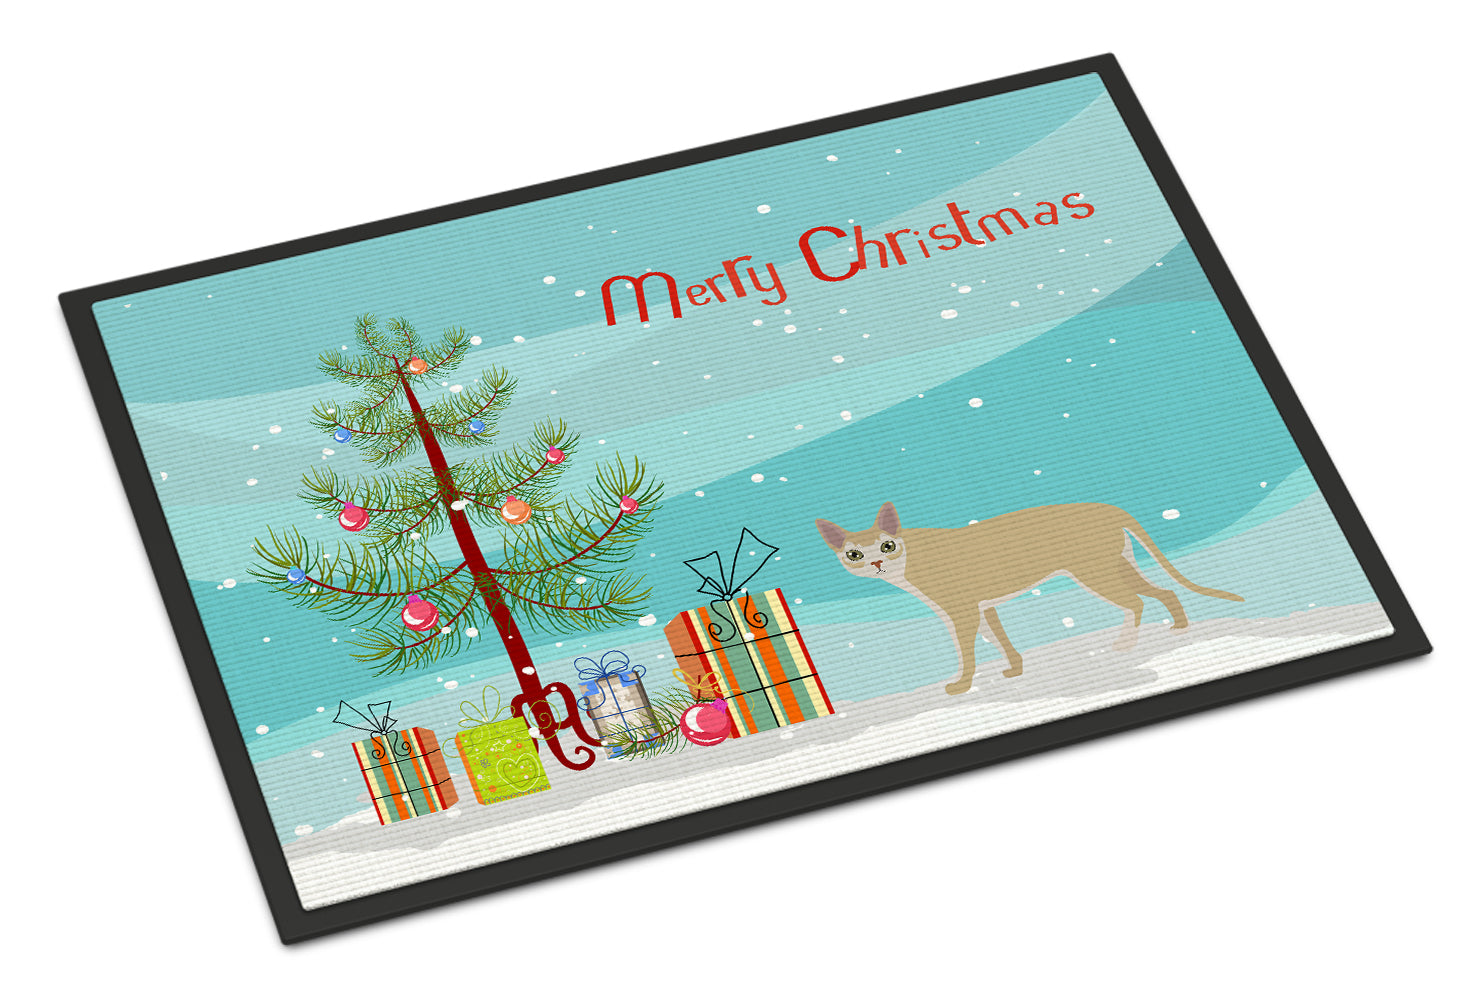 Singapura Cat Merry Christmas Indoor or Outdoor Mat 18x27 CK4716MAT by Caroline's Treasures